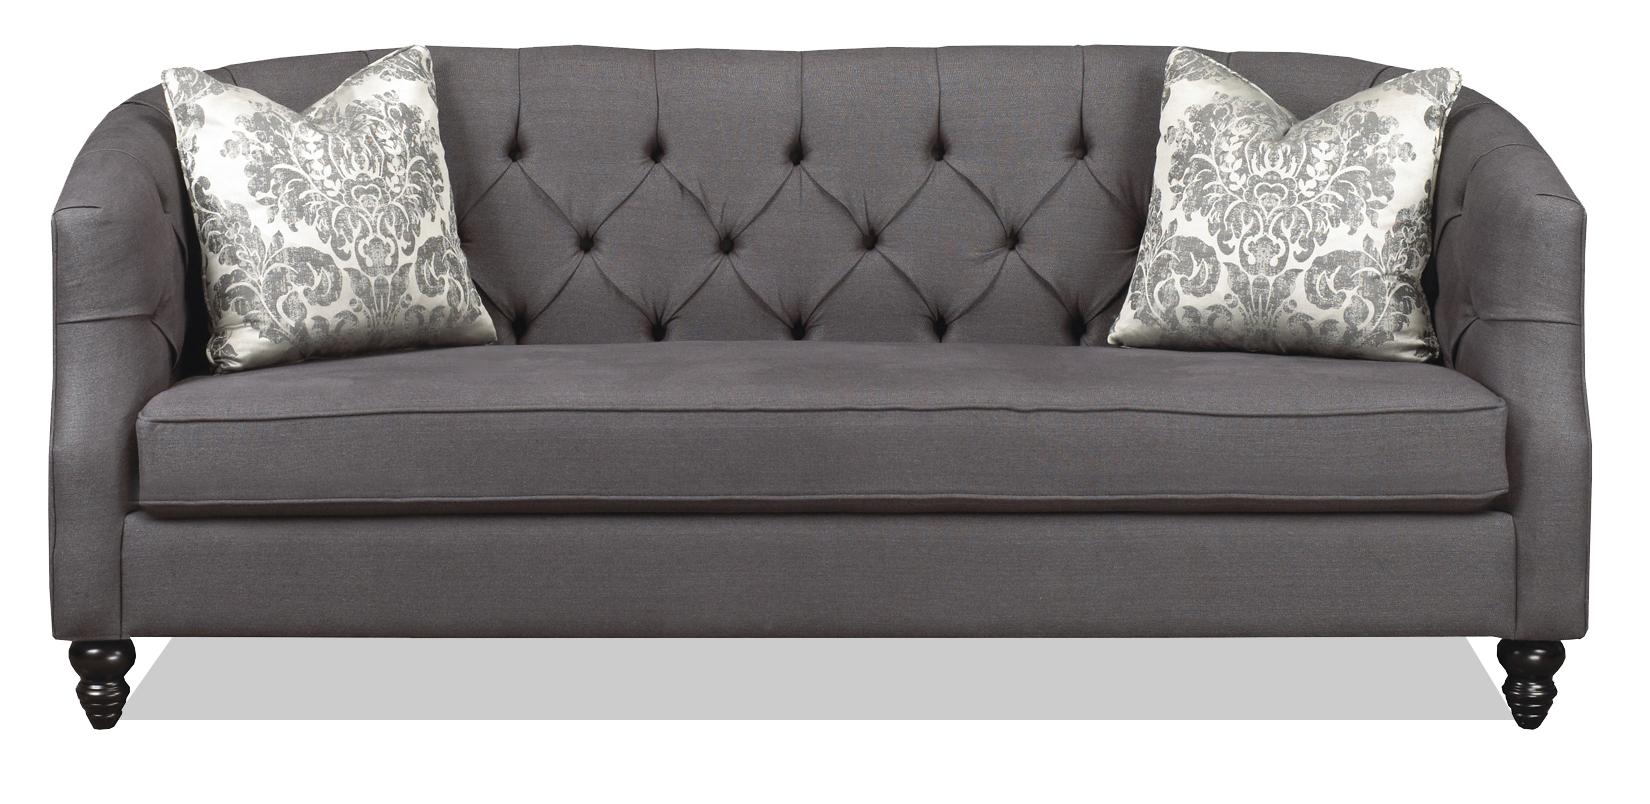 Brentwood Classics 1230 Daisy Tufted Sectional Sofa - Item Number: 1230-38